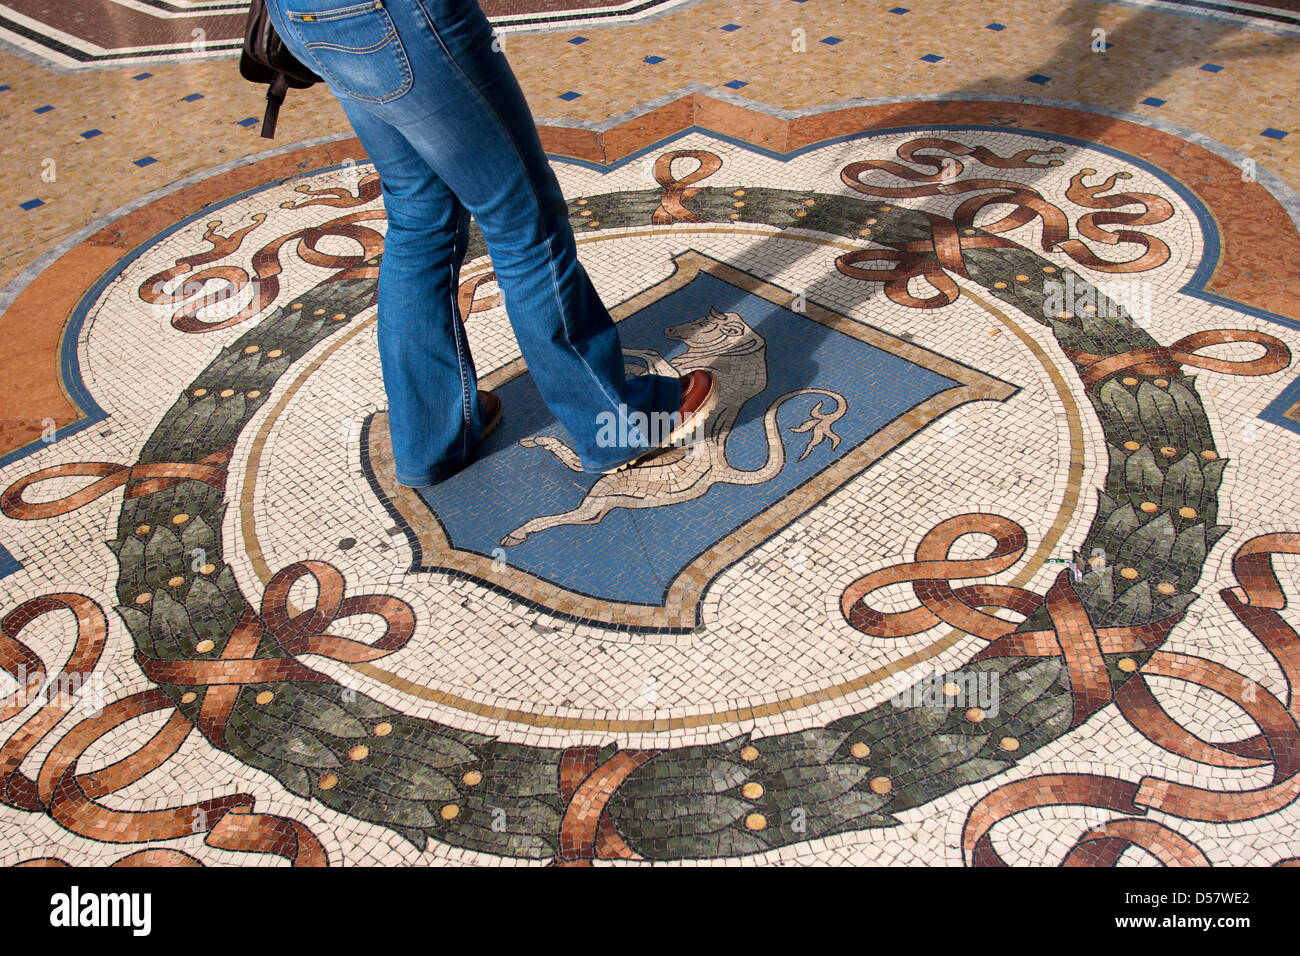 Spinning on bulls genitals for good luck Galleria Vittorio Emanuele II Arcade Milan - Stock Image